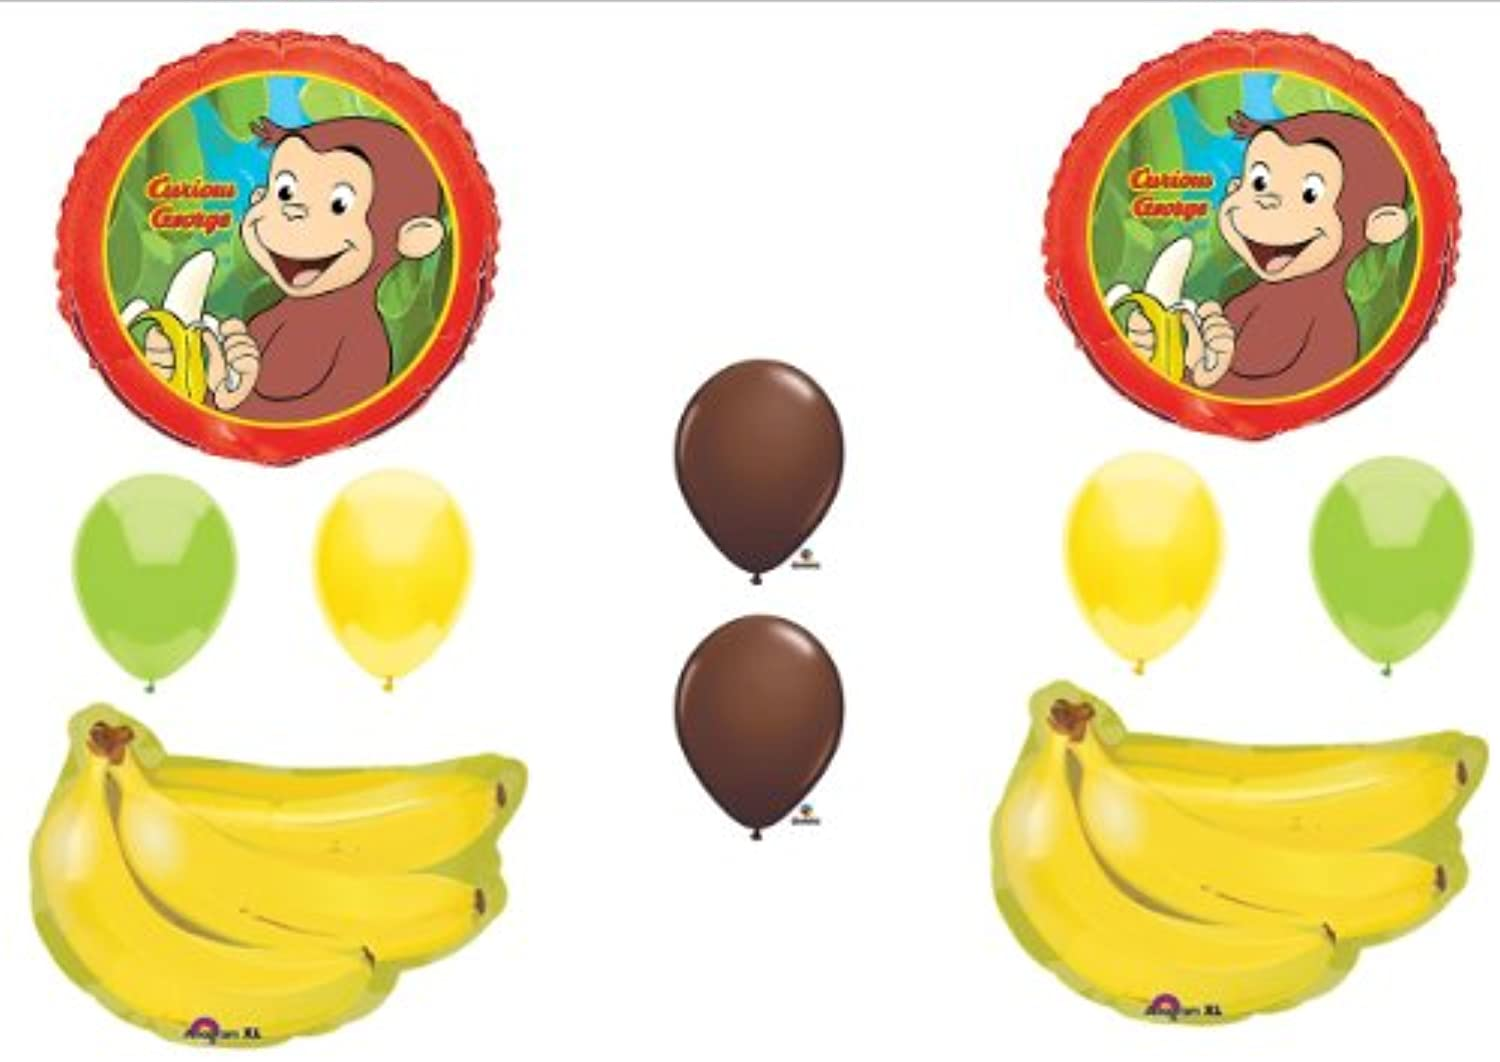 CURIOUS GEORGE BIRTHDAY PARTY Balloons Decorations Supplies Monkey Bananas by Anagram [並行輸入品]